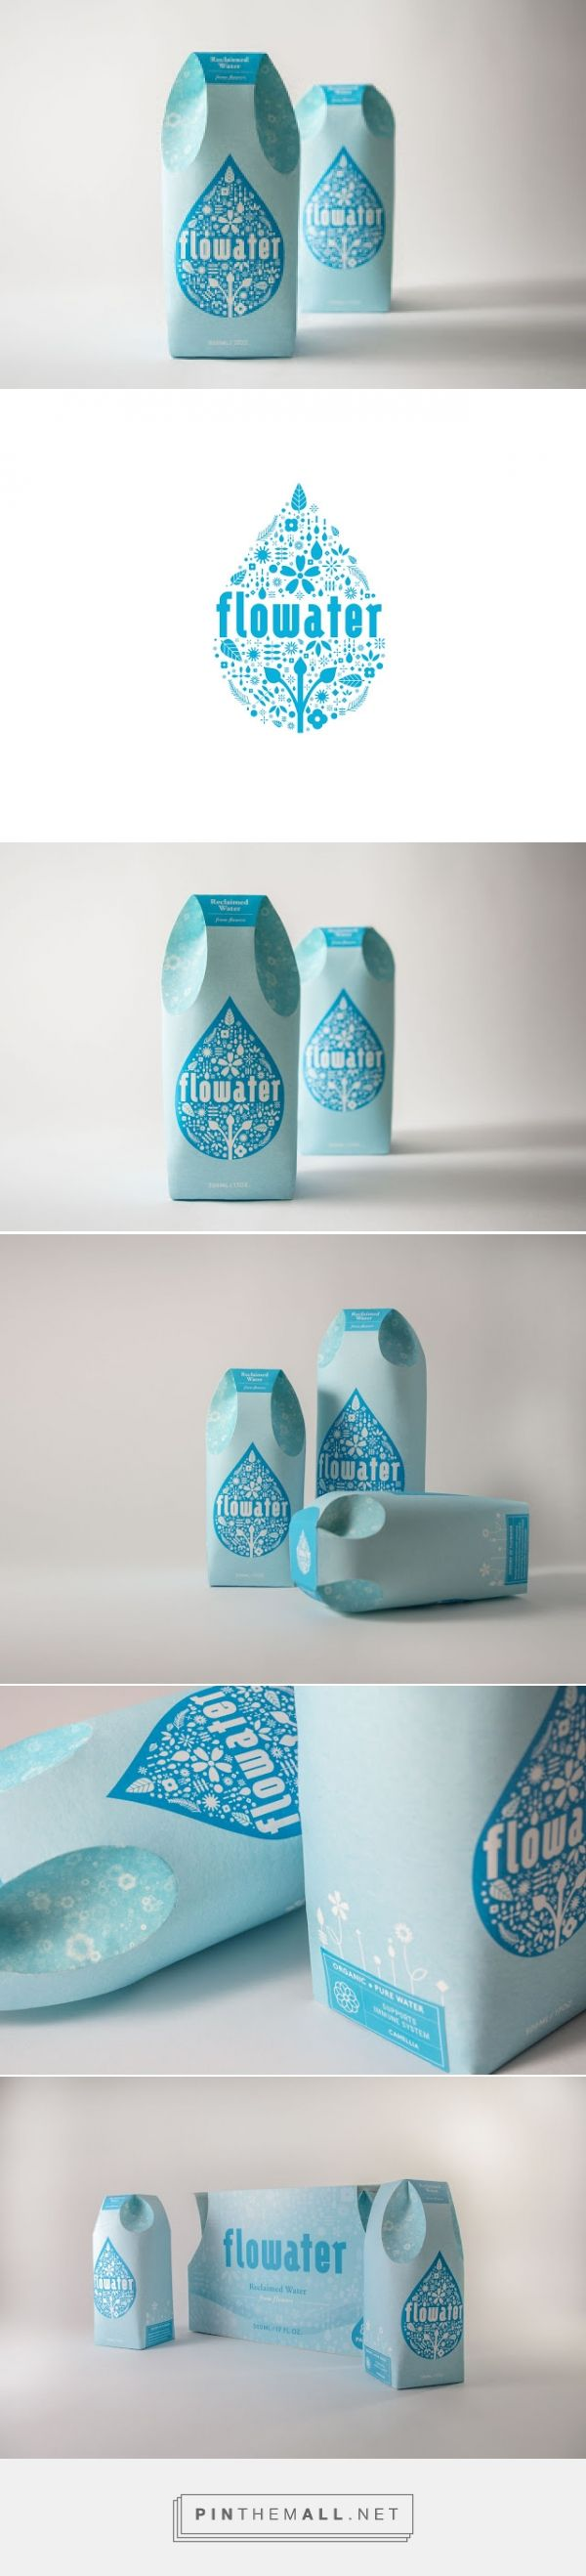 Flowater is a tetra pak of drinking water, which is extracted from flowers that…